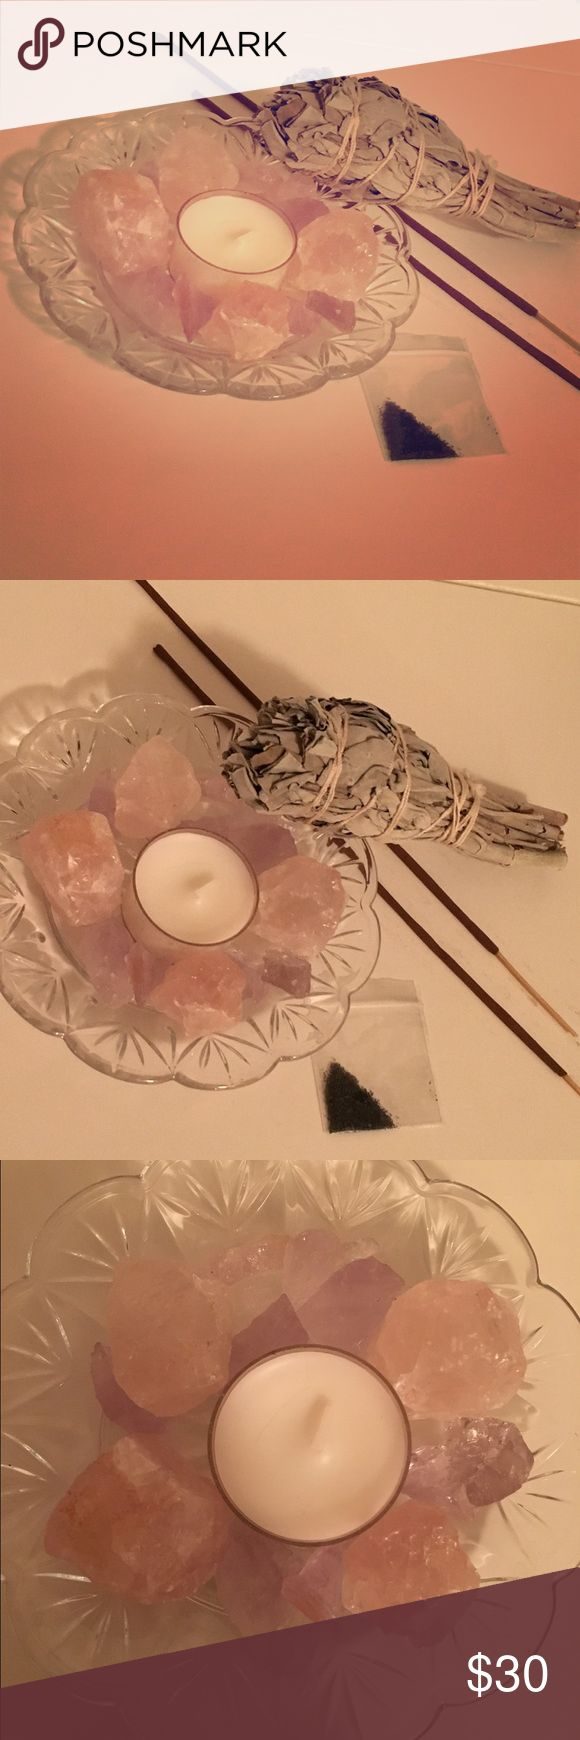 🕉🌙Home Protection Bundle! 🕉🌙Home Protection Spell set with 1 white Sage torch, 2 incense sticks, Black lava salt for protection from neighbors and to be burnt with candle!🕯 💕4 rose Quartz Crystals, mixed rough ☮️purple amethyst on a glass candle plate. Tea light is infused with honeysuckle and mint. All items are NWT Never used! ✌🏻️Will be packed individual, assembly is required! Other